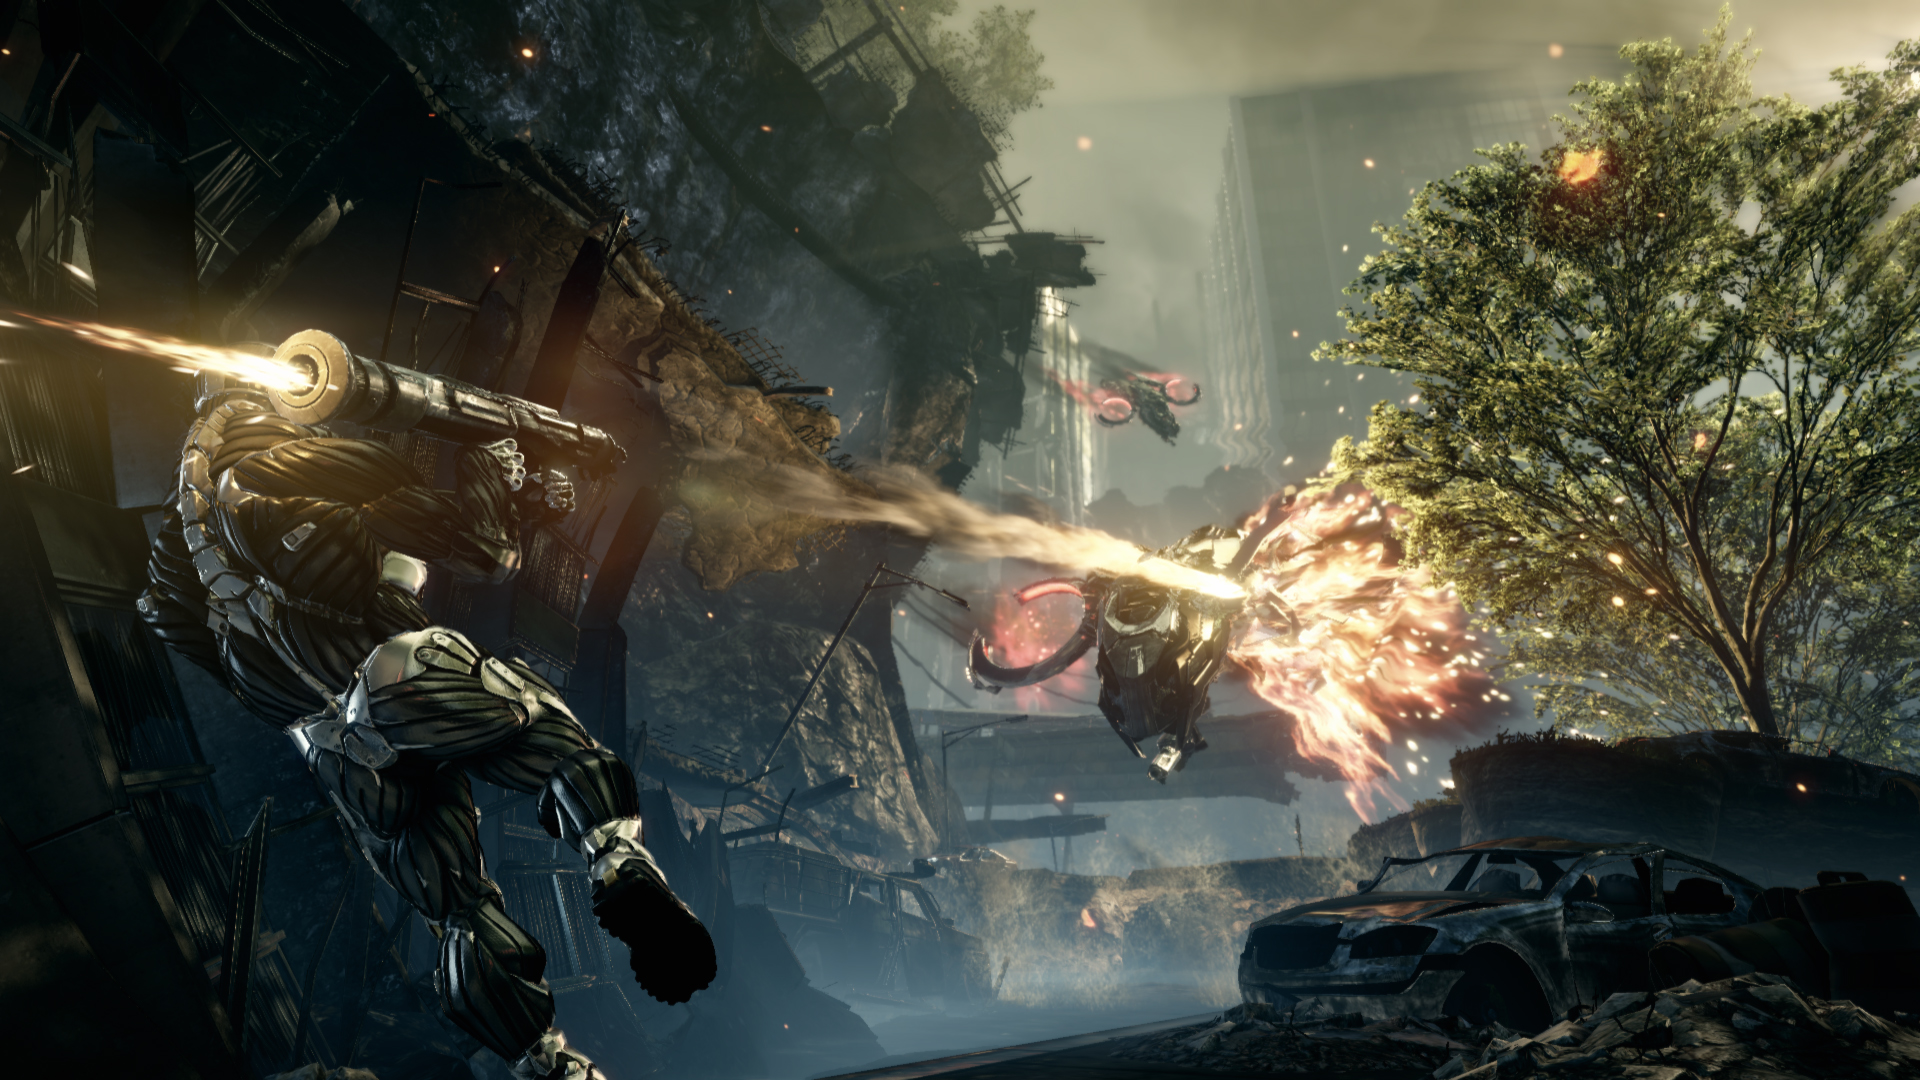 Crysis 3 directx 10 patch v1. 0. 1a!!! Download for free!!! Youtube.